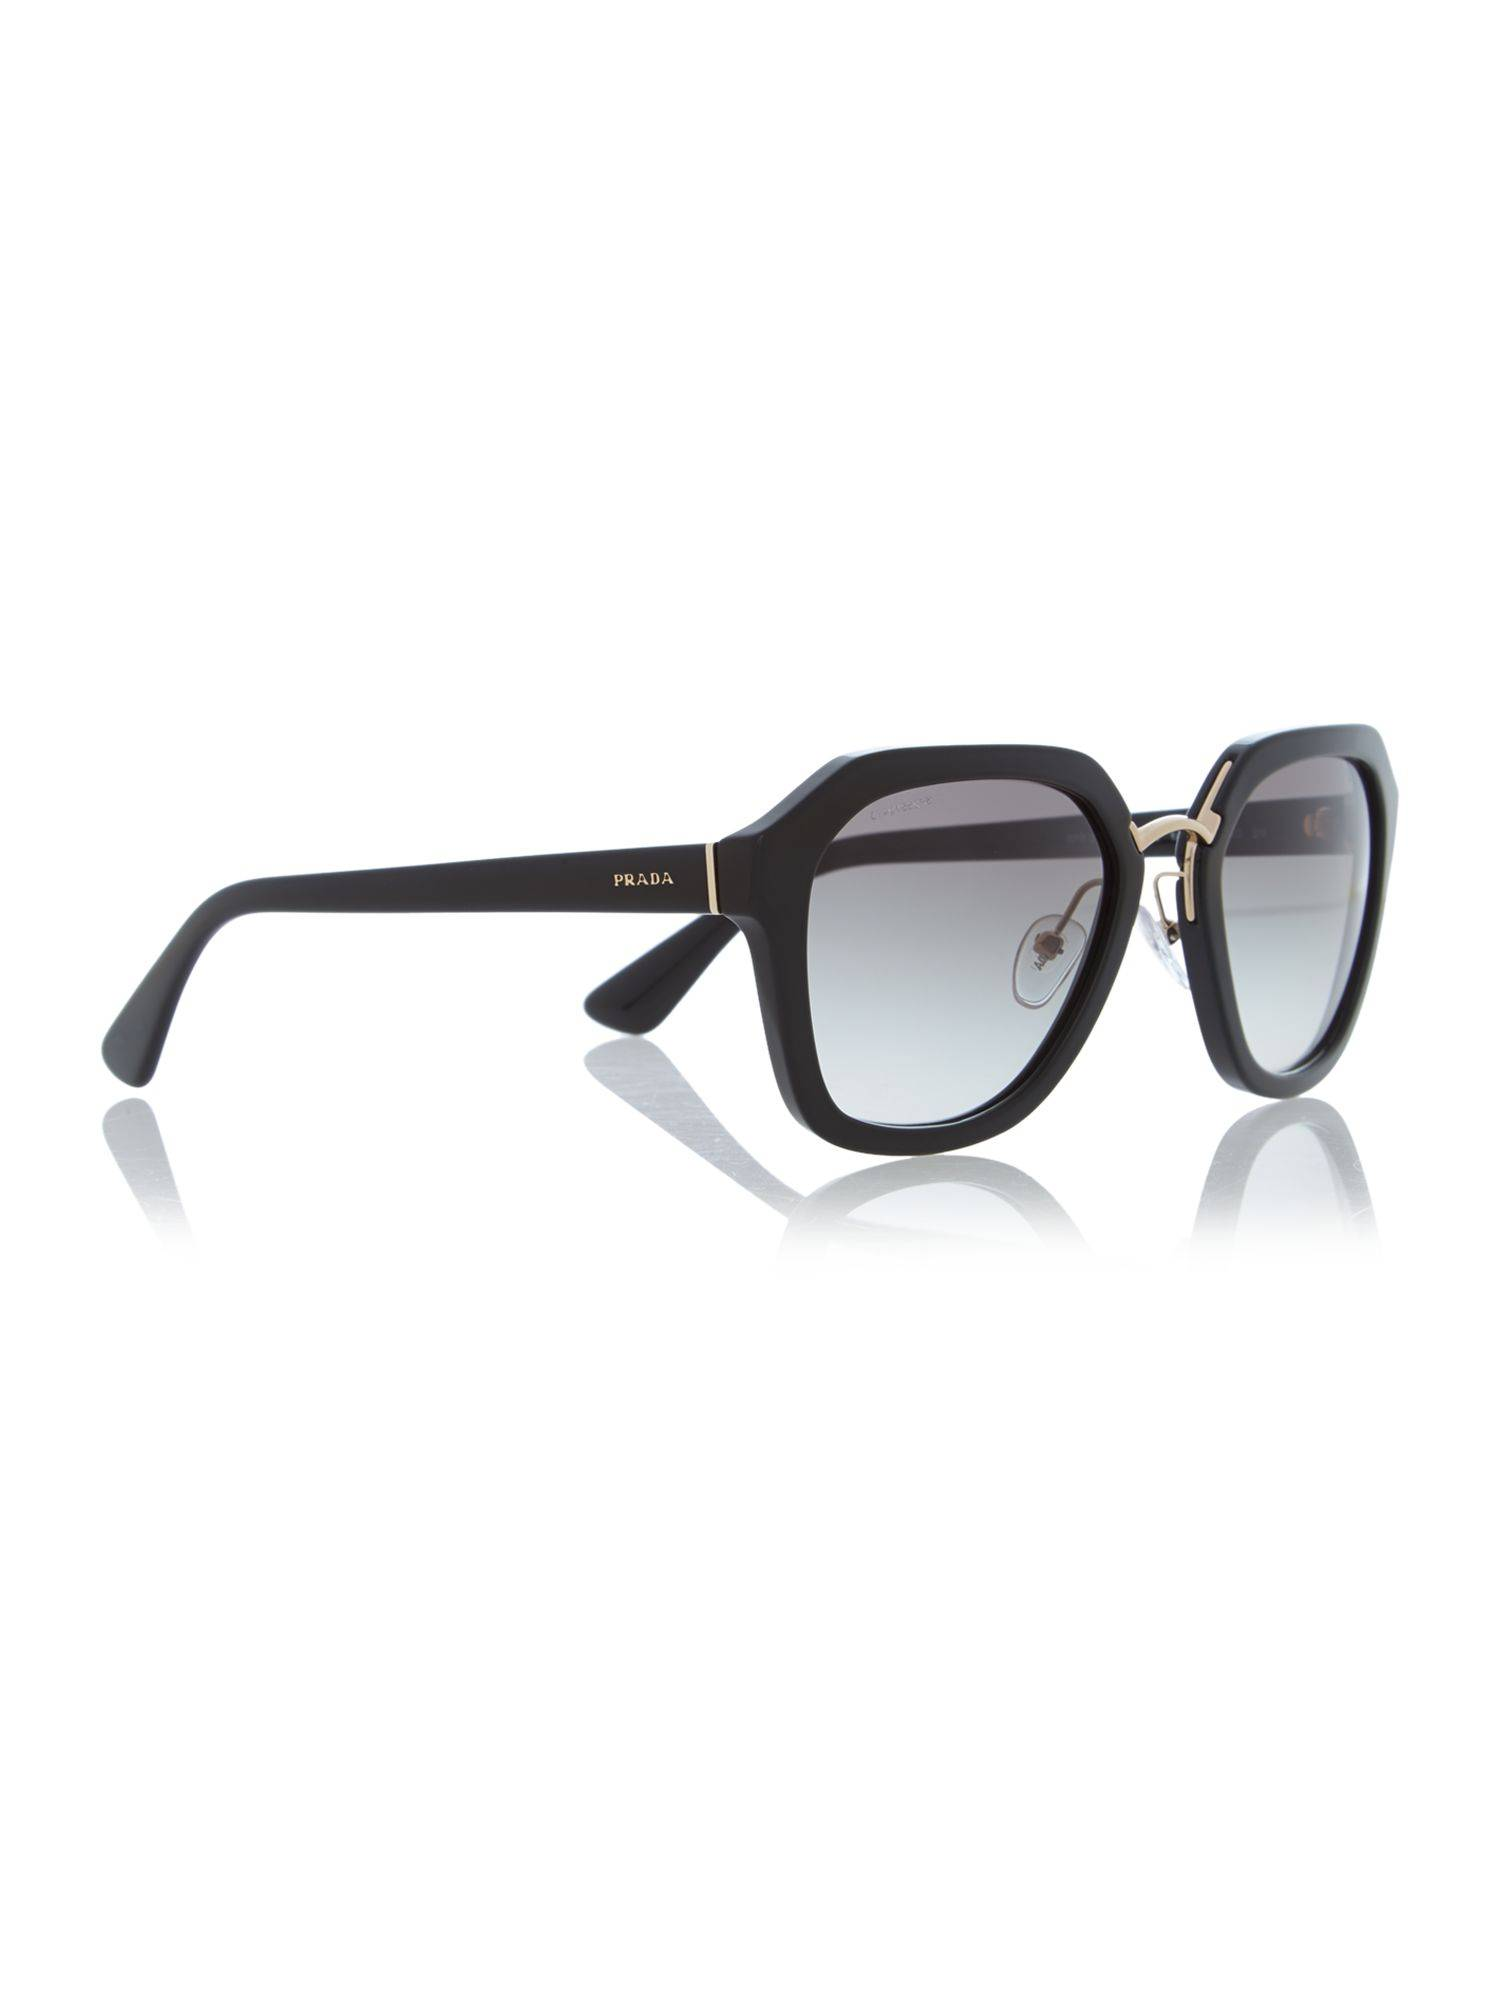 Prada Sunglasses PR 25RS square sunglasses